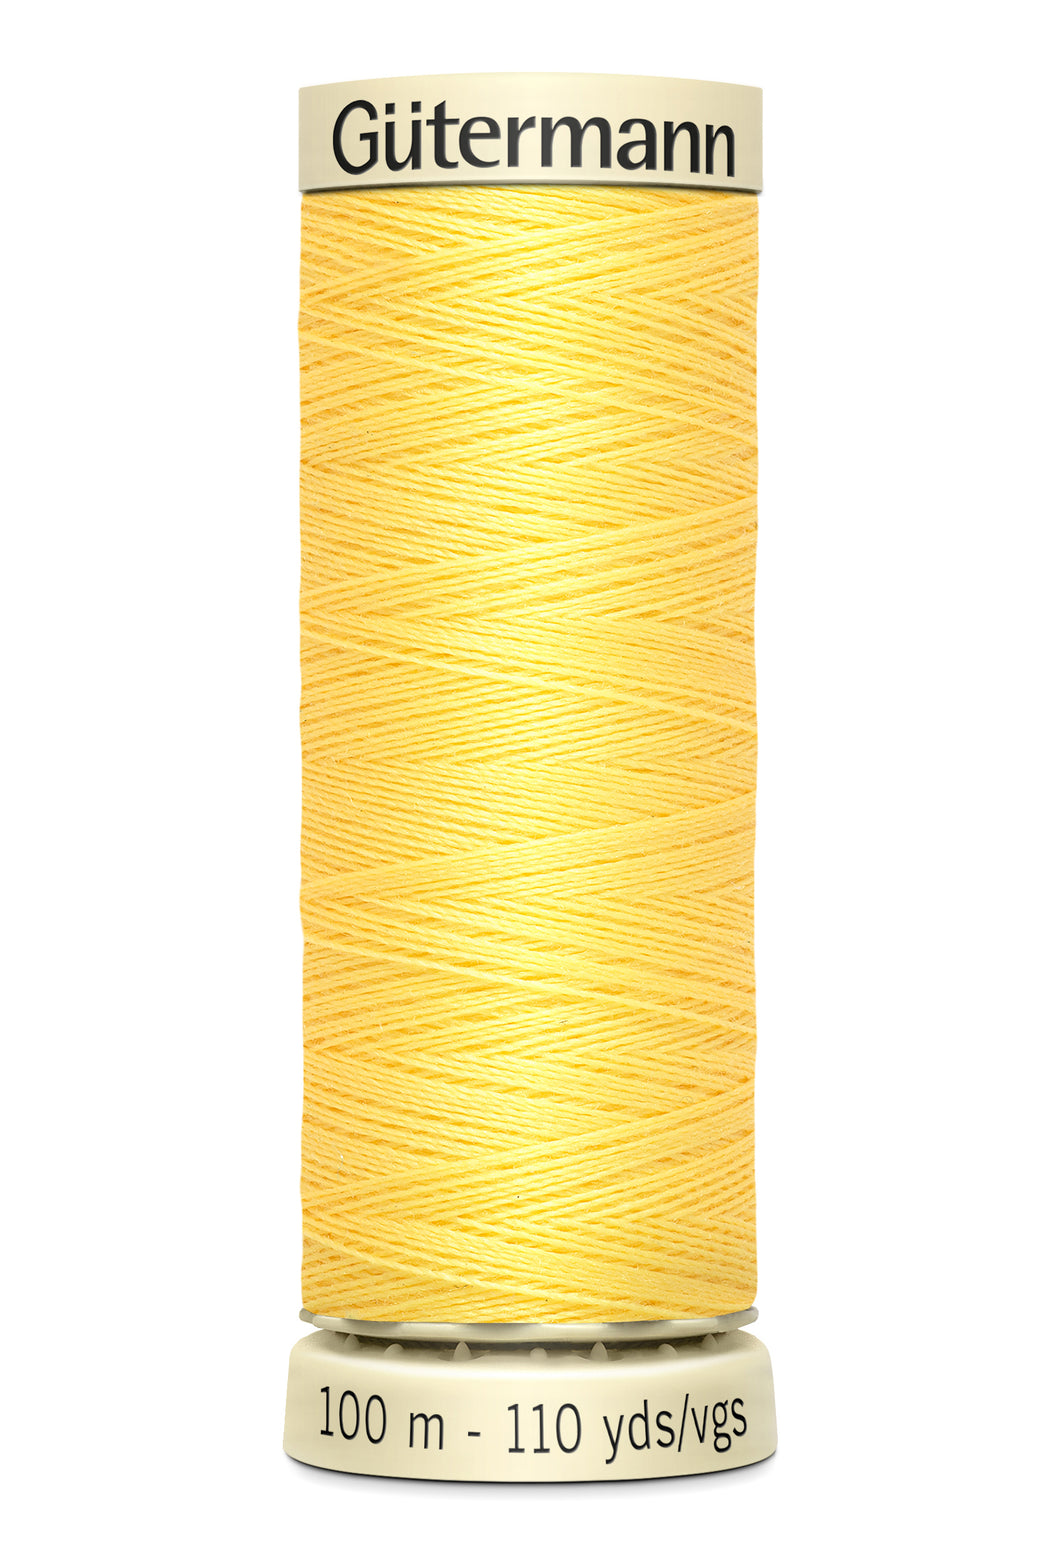 Gutermann Sew All Thread - Colour 852 Yellow